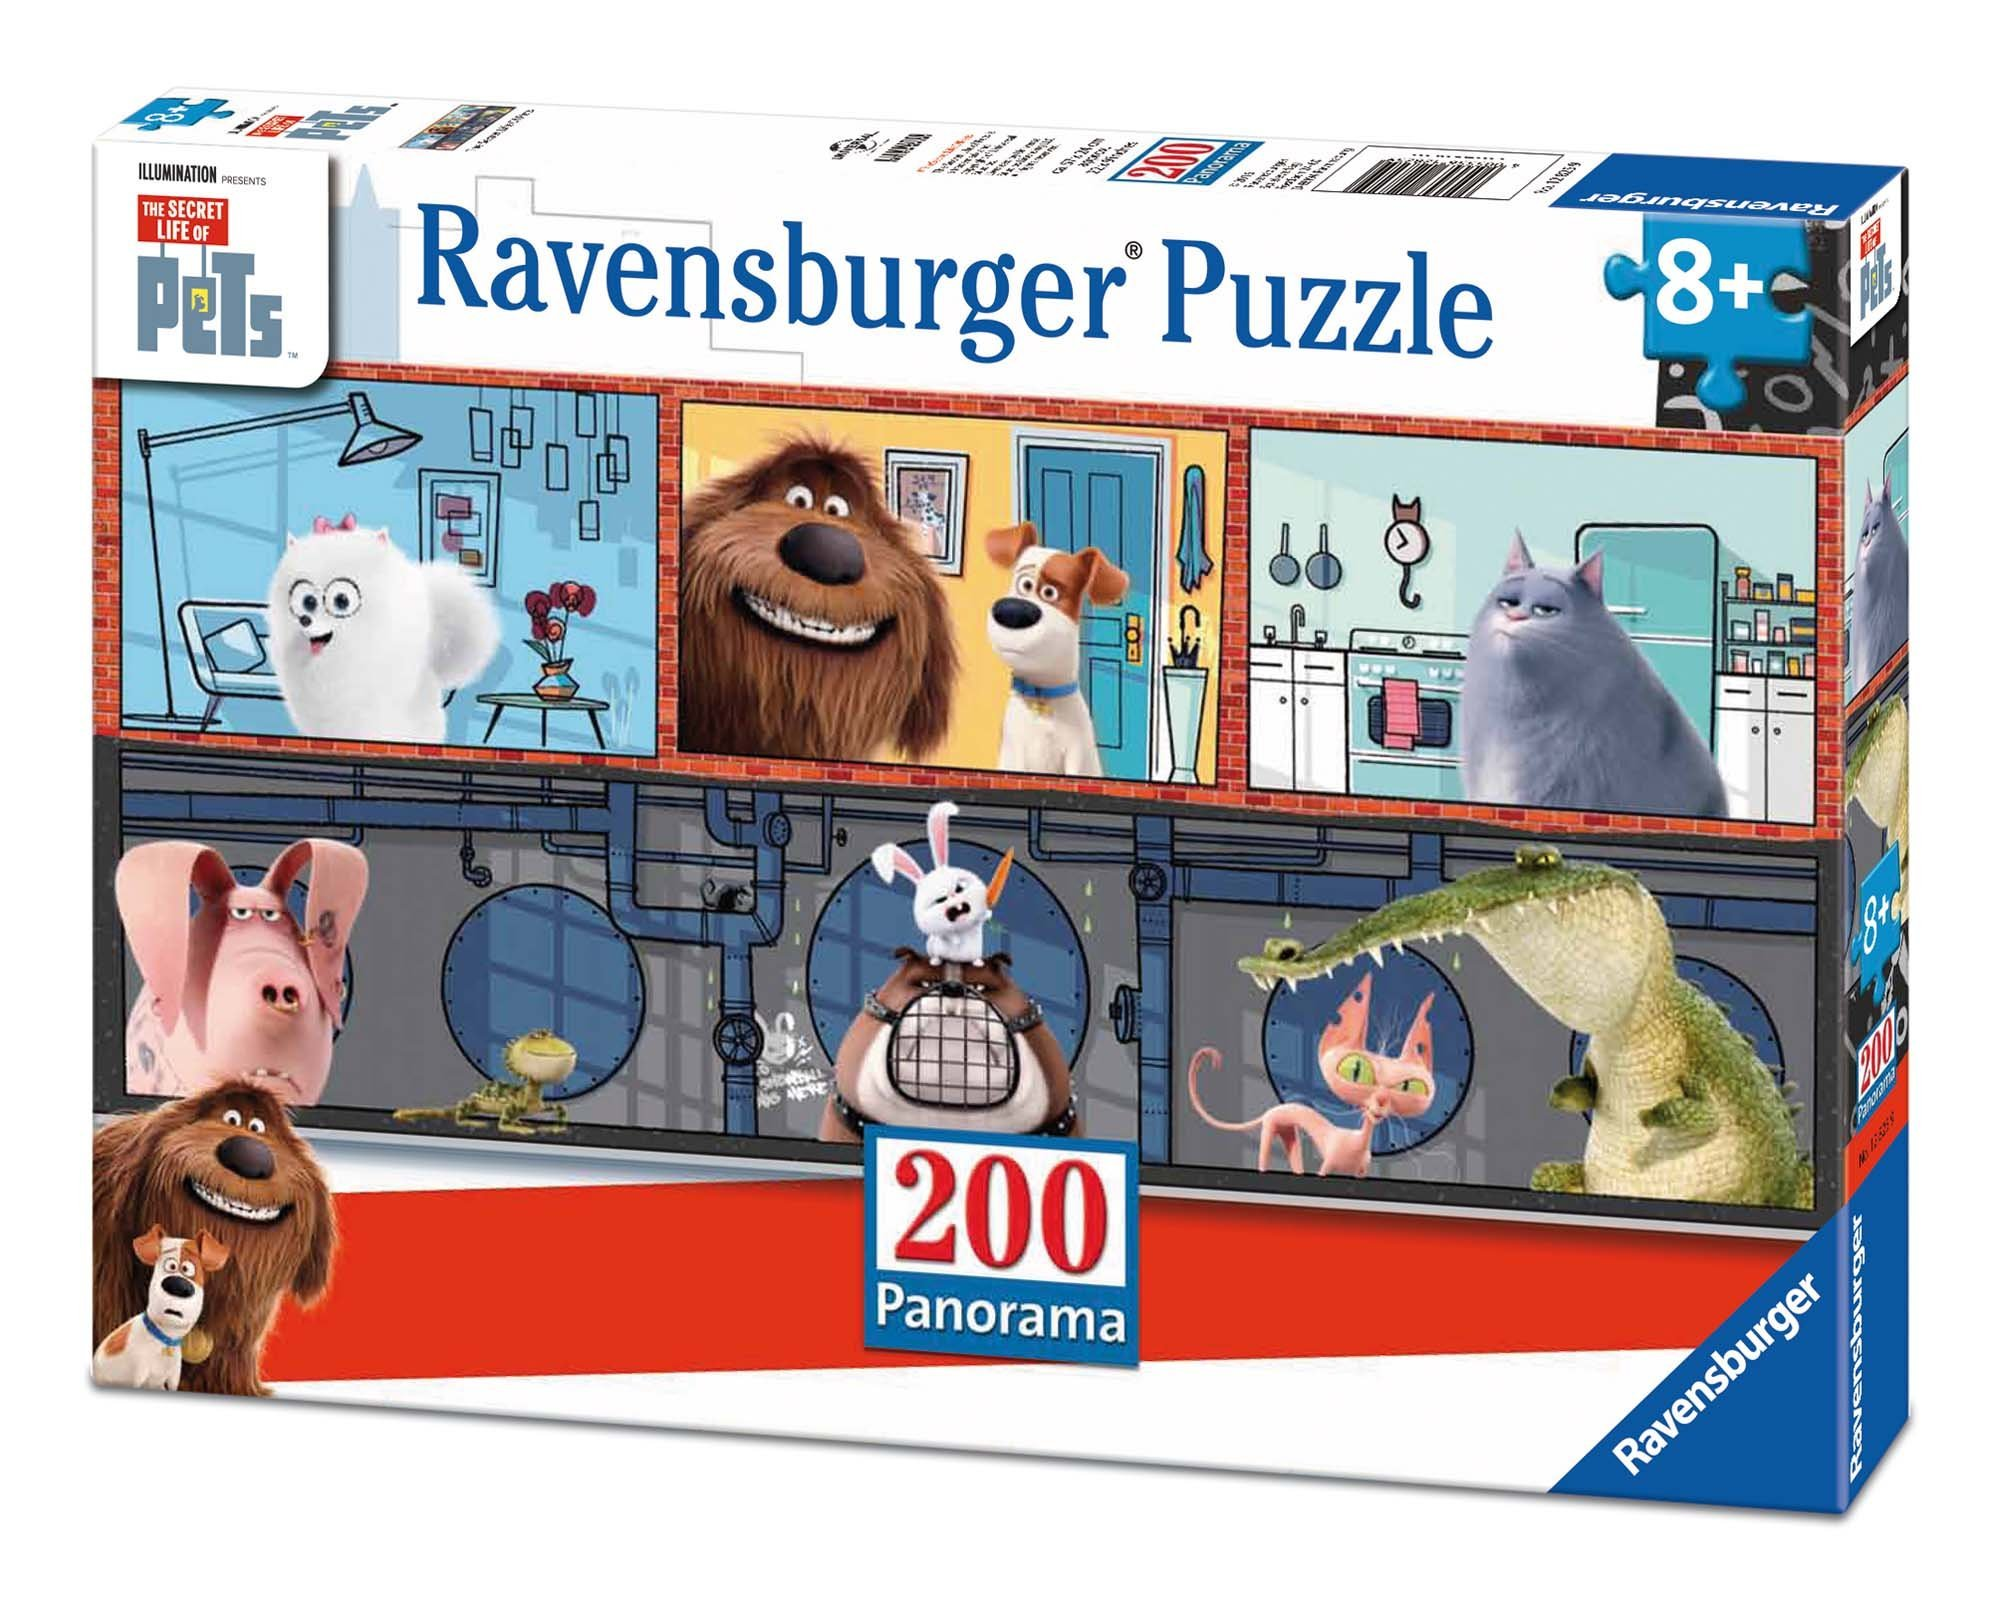 Ravensburger The Secret Life of Pets Panorama 200 Piece Jigsaw Puzzle for Kids - Every Piece is Unique, Pieces Fit Together Perfectly by Ravensburger